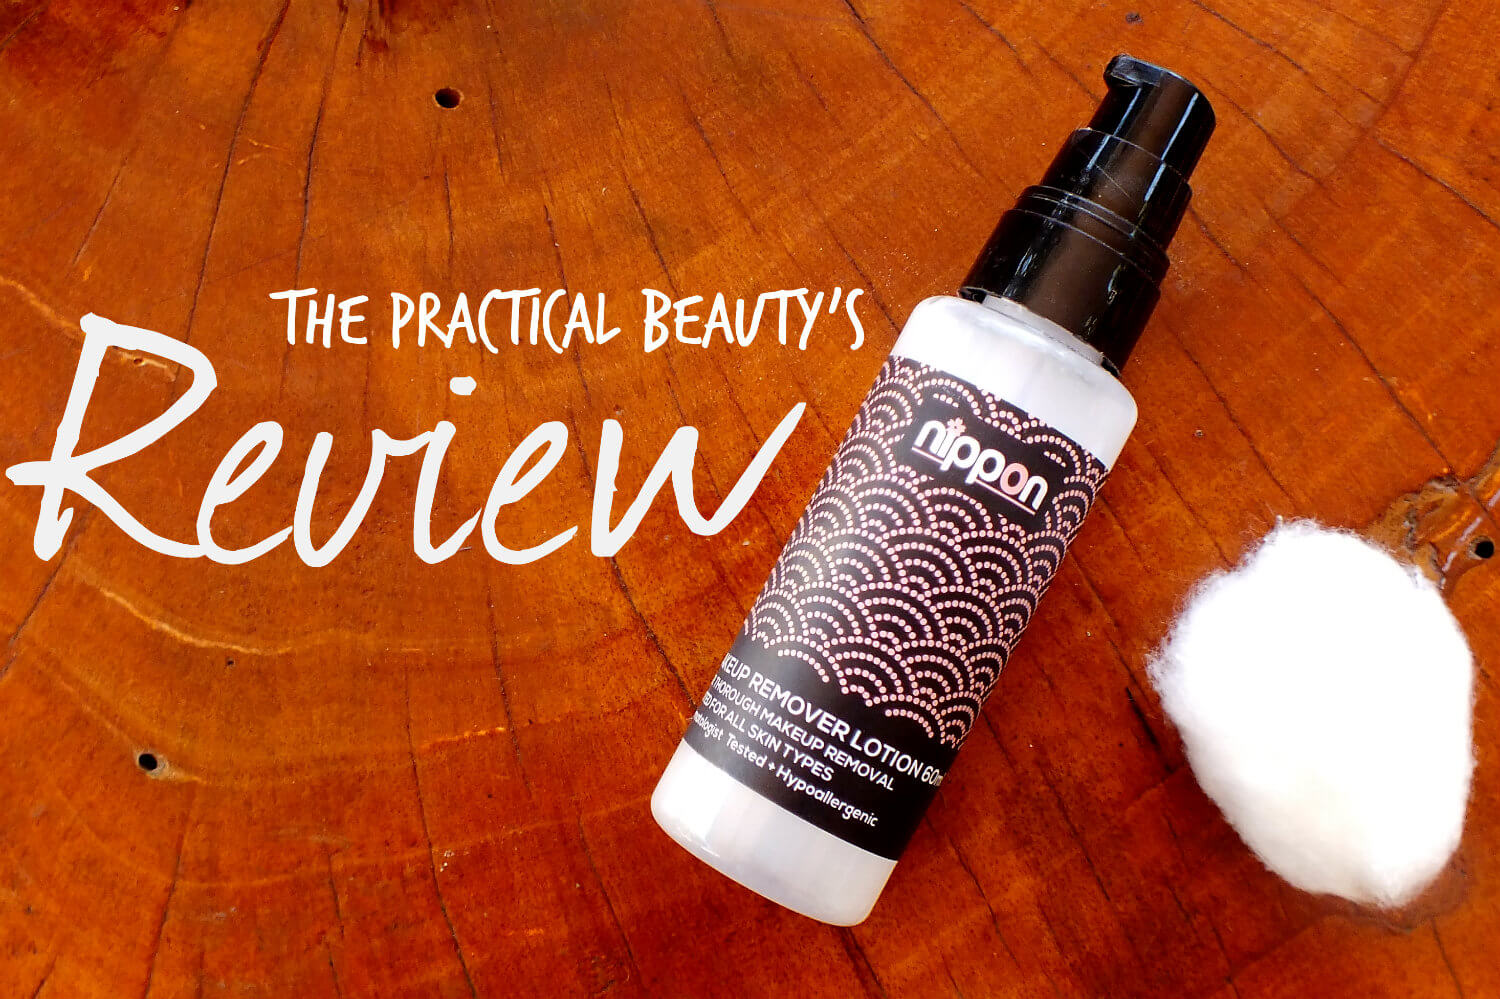 Nippon Esthetic Makeup Remover Lotion Review by The Practical Beauty